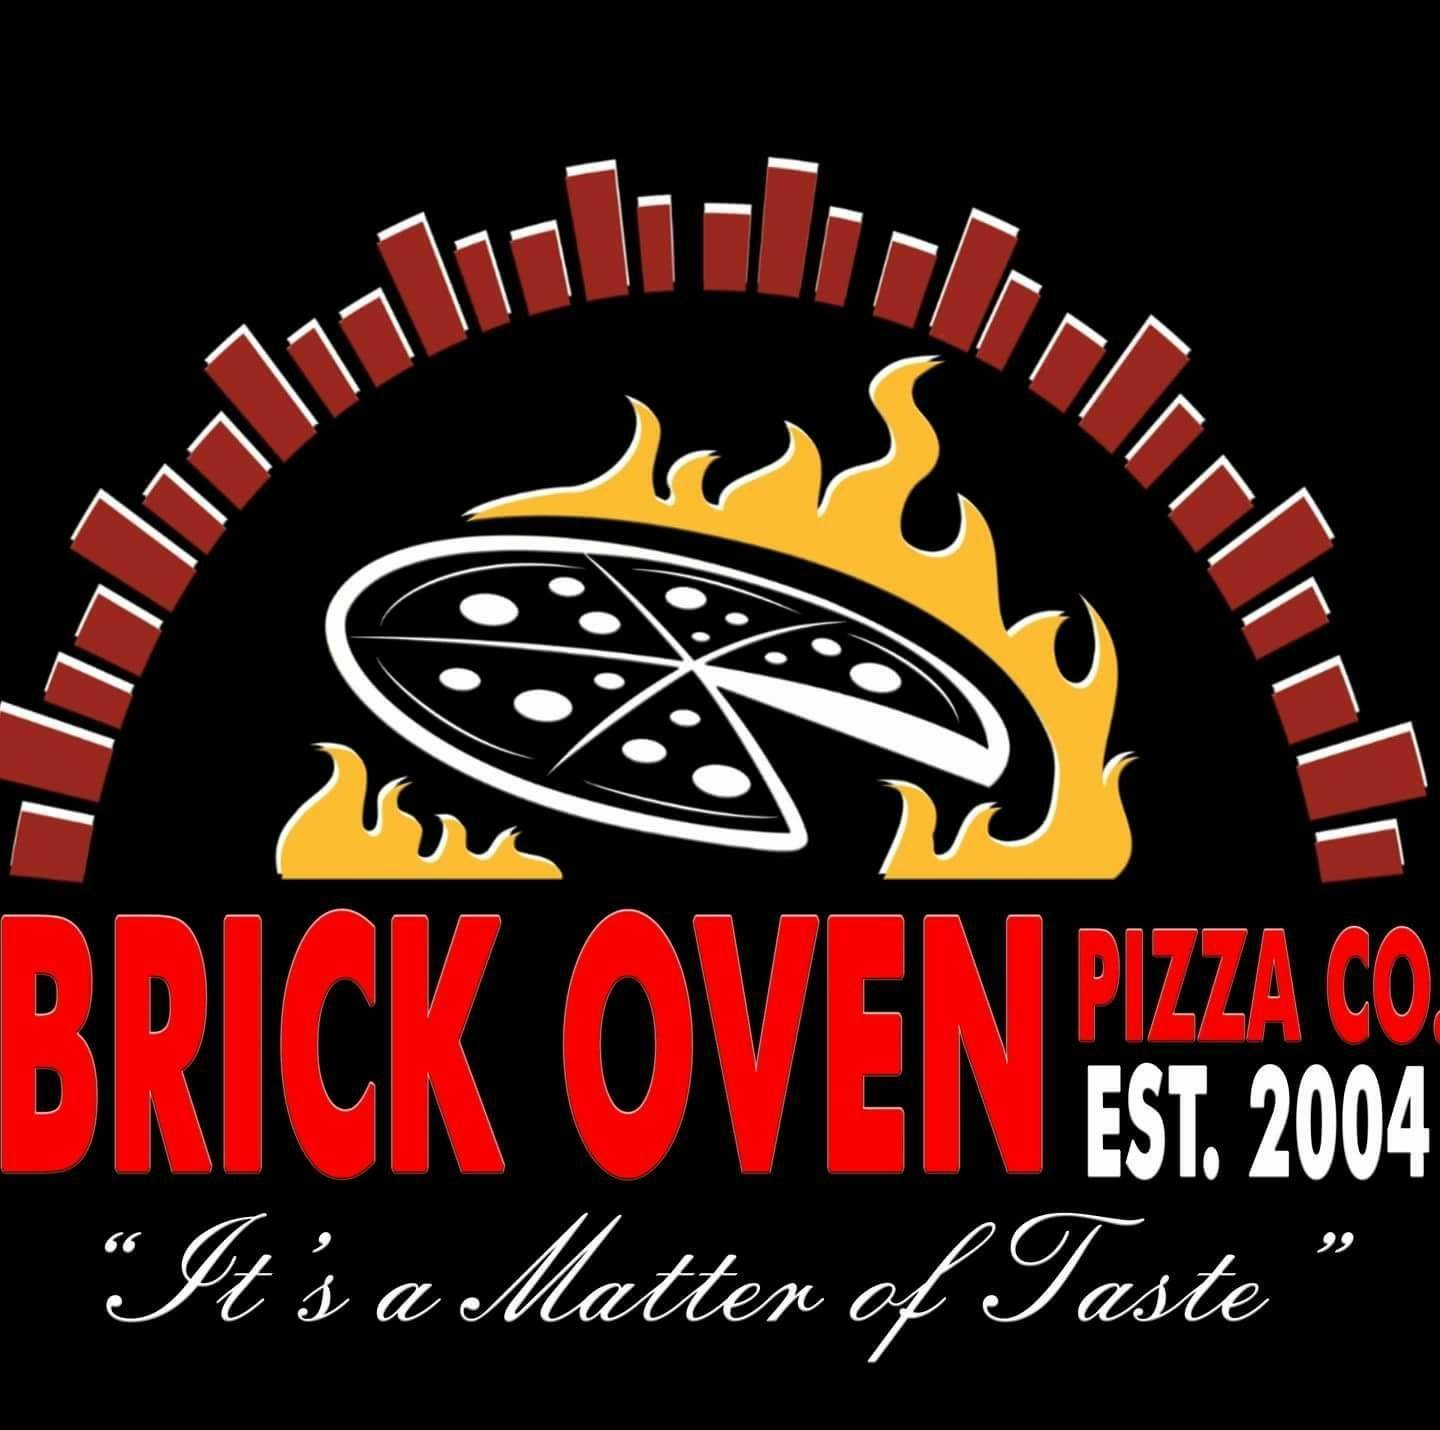 Brick Oven Pizza Co